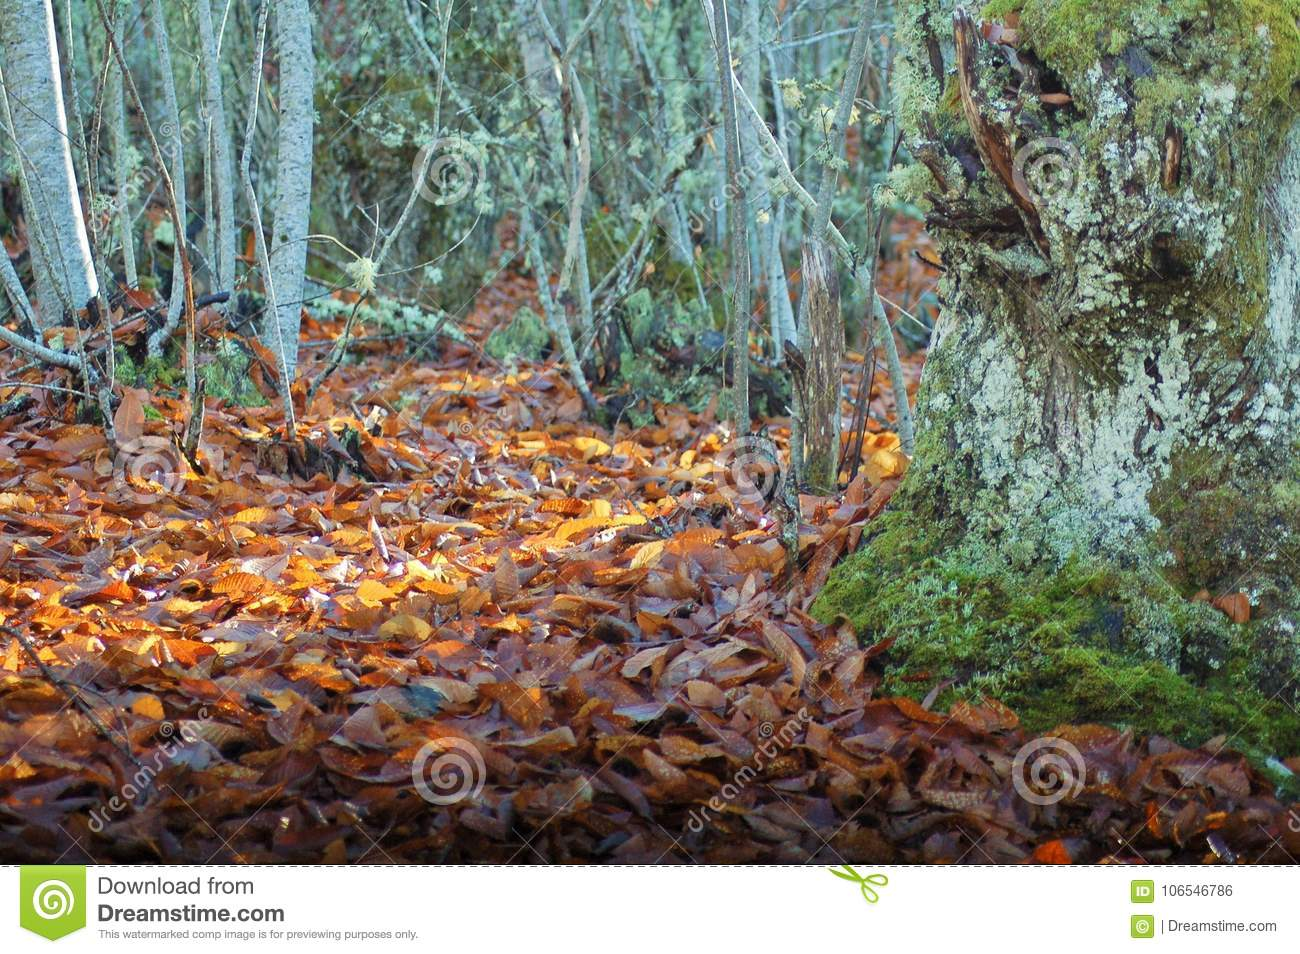 Leaves under the sunlight in the forest